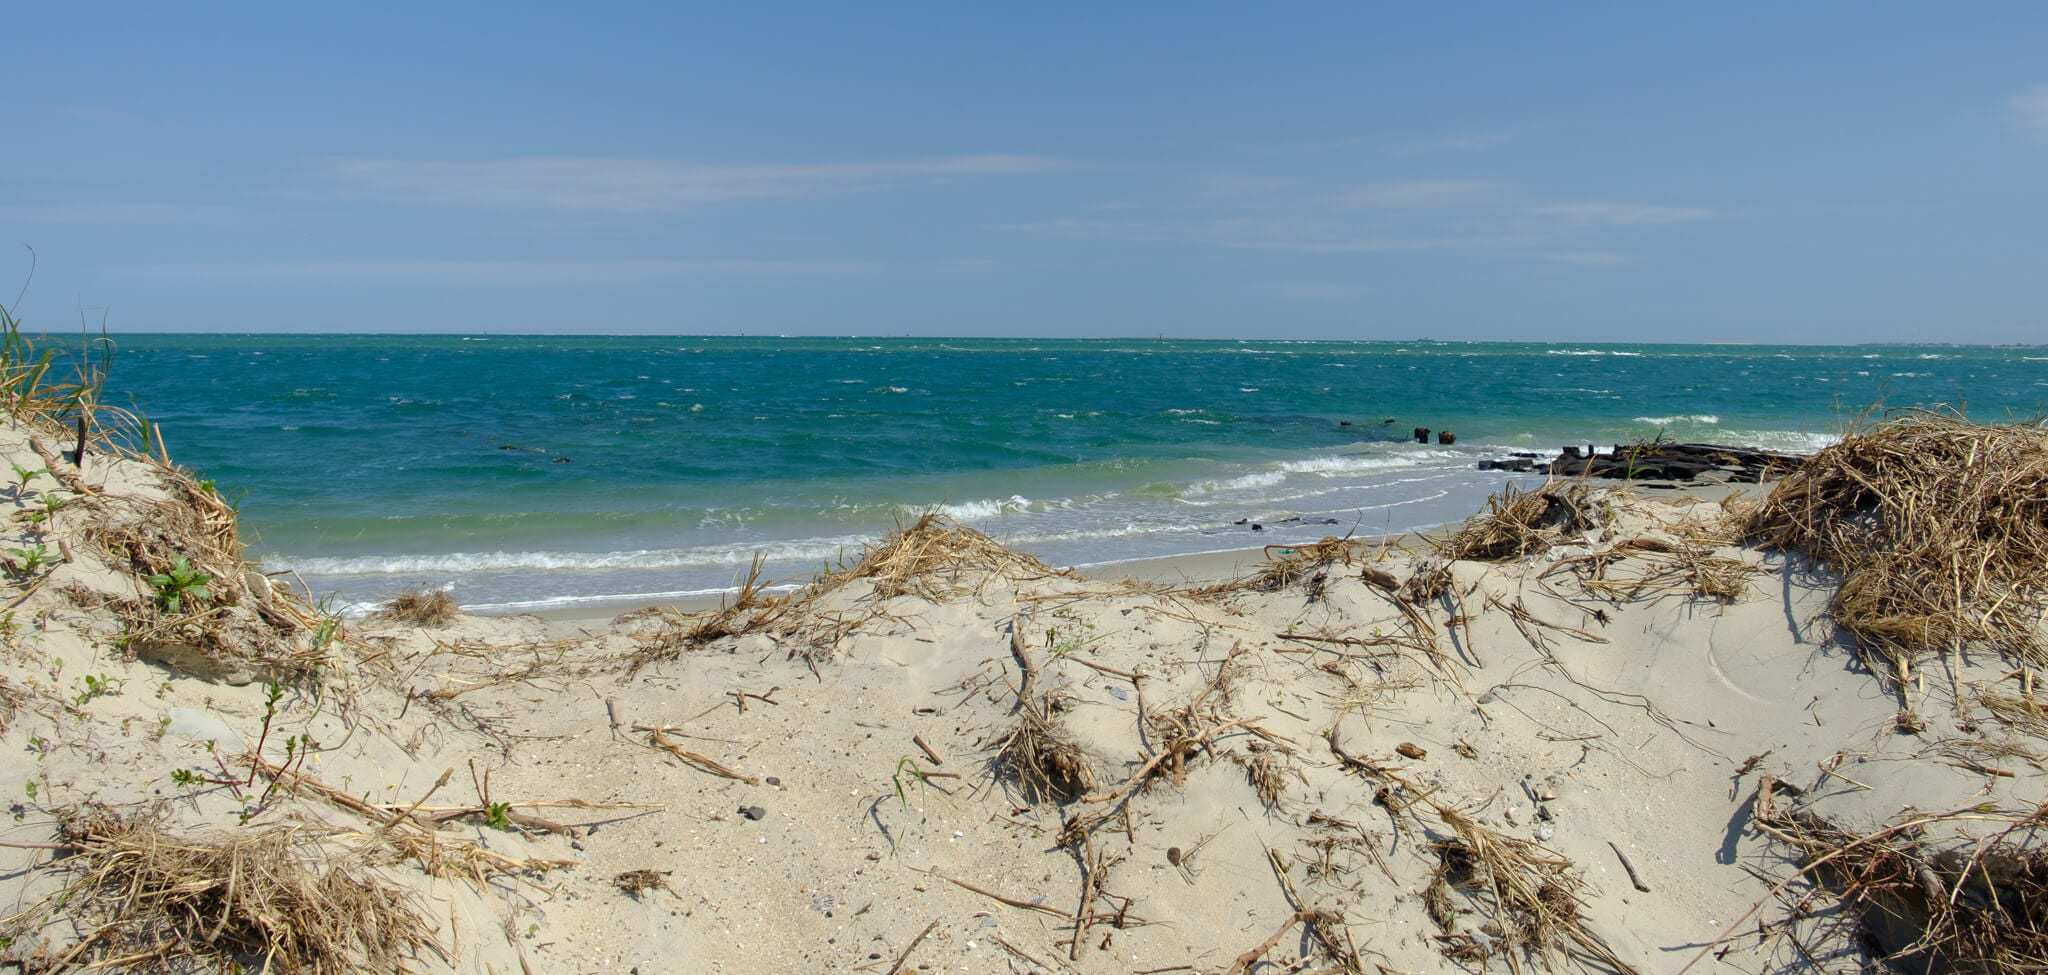 OCRACOKE BEACH, NORTH CAROLINA